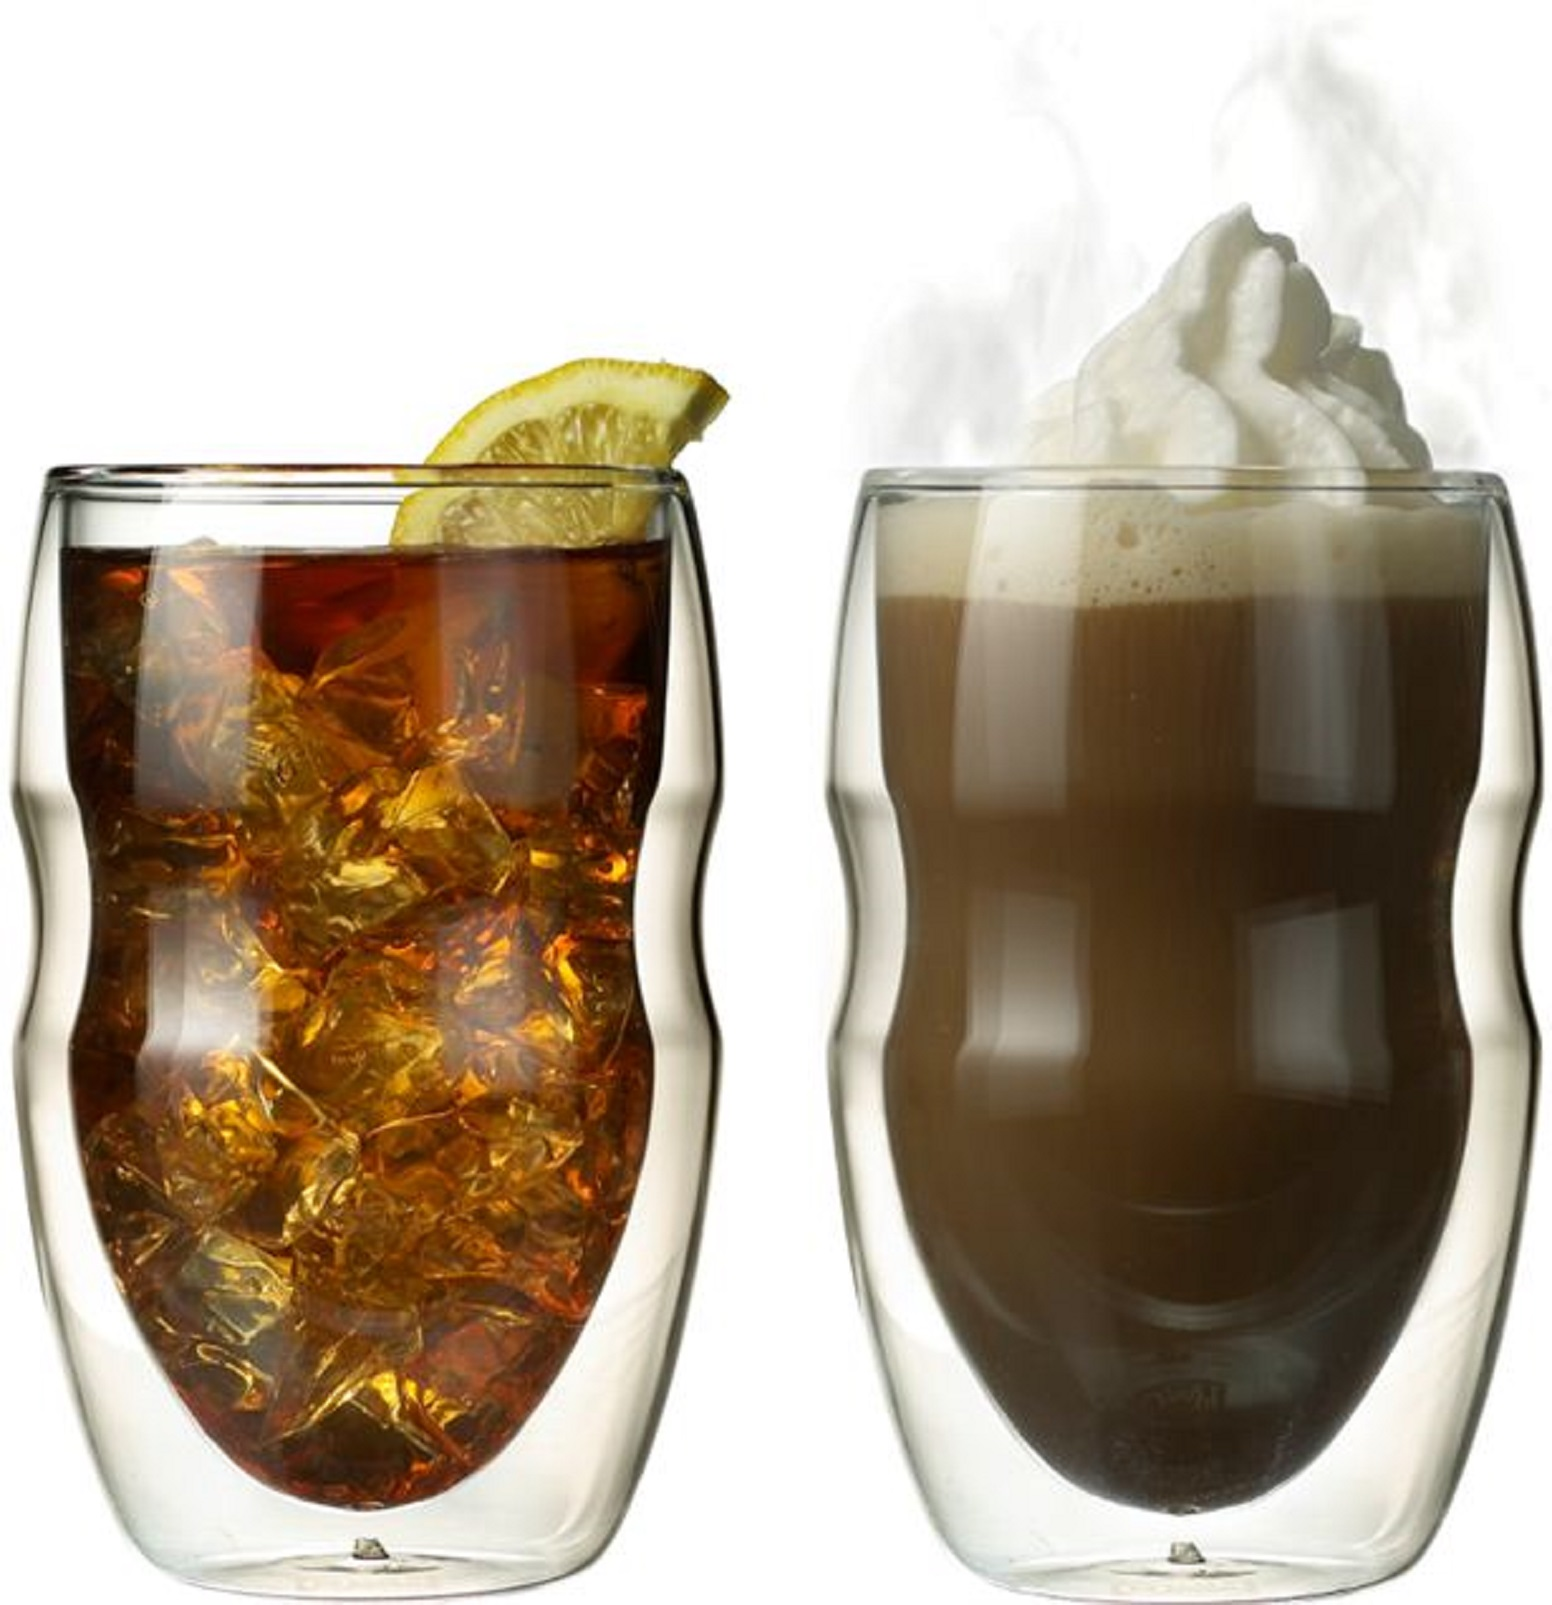 Serafino Double Wall 12 oz Beverage & Coffee Glasses - Set of 2 Insulated Drinking Glasses